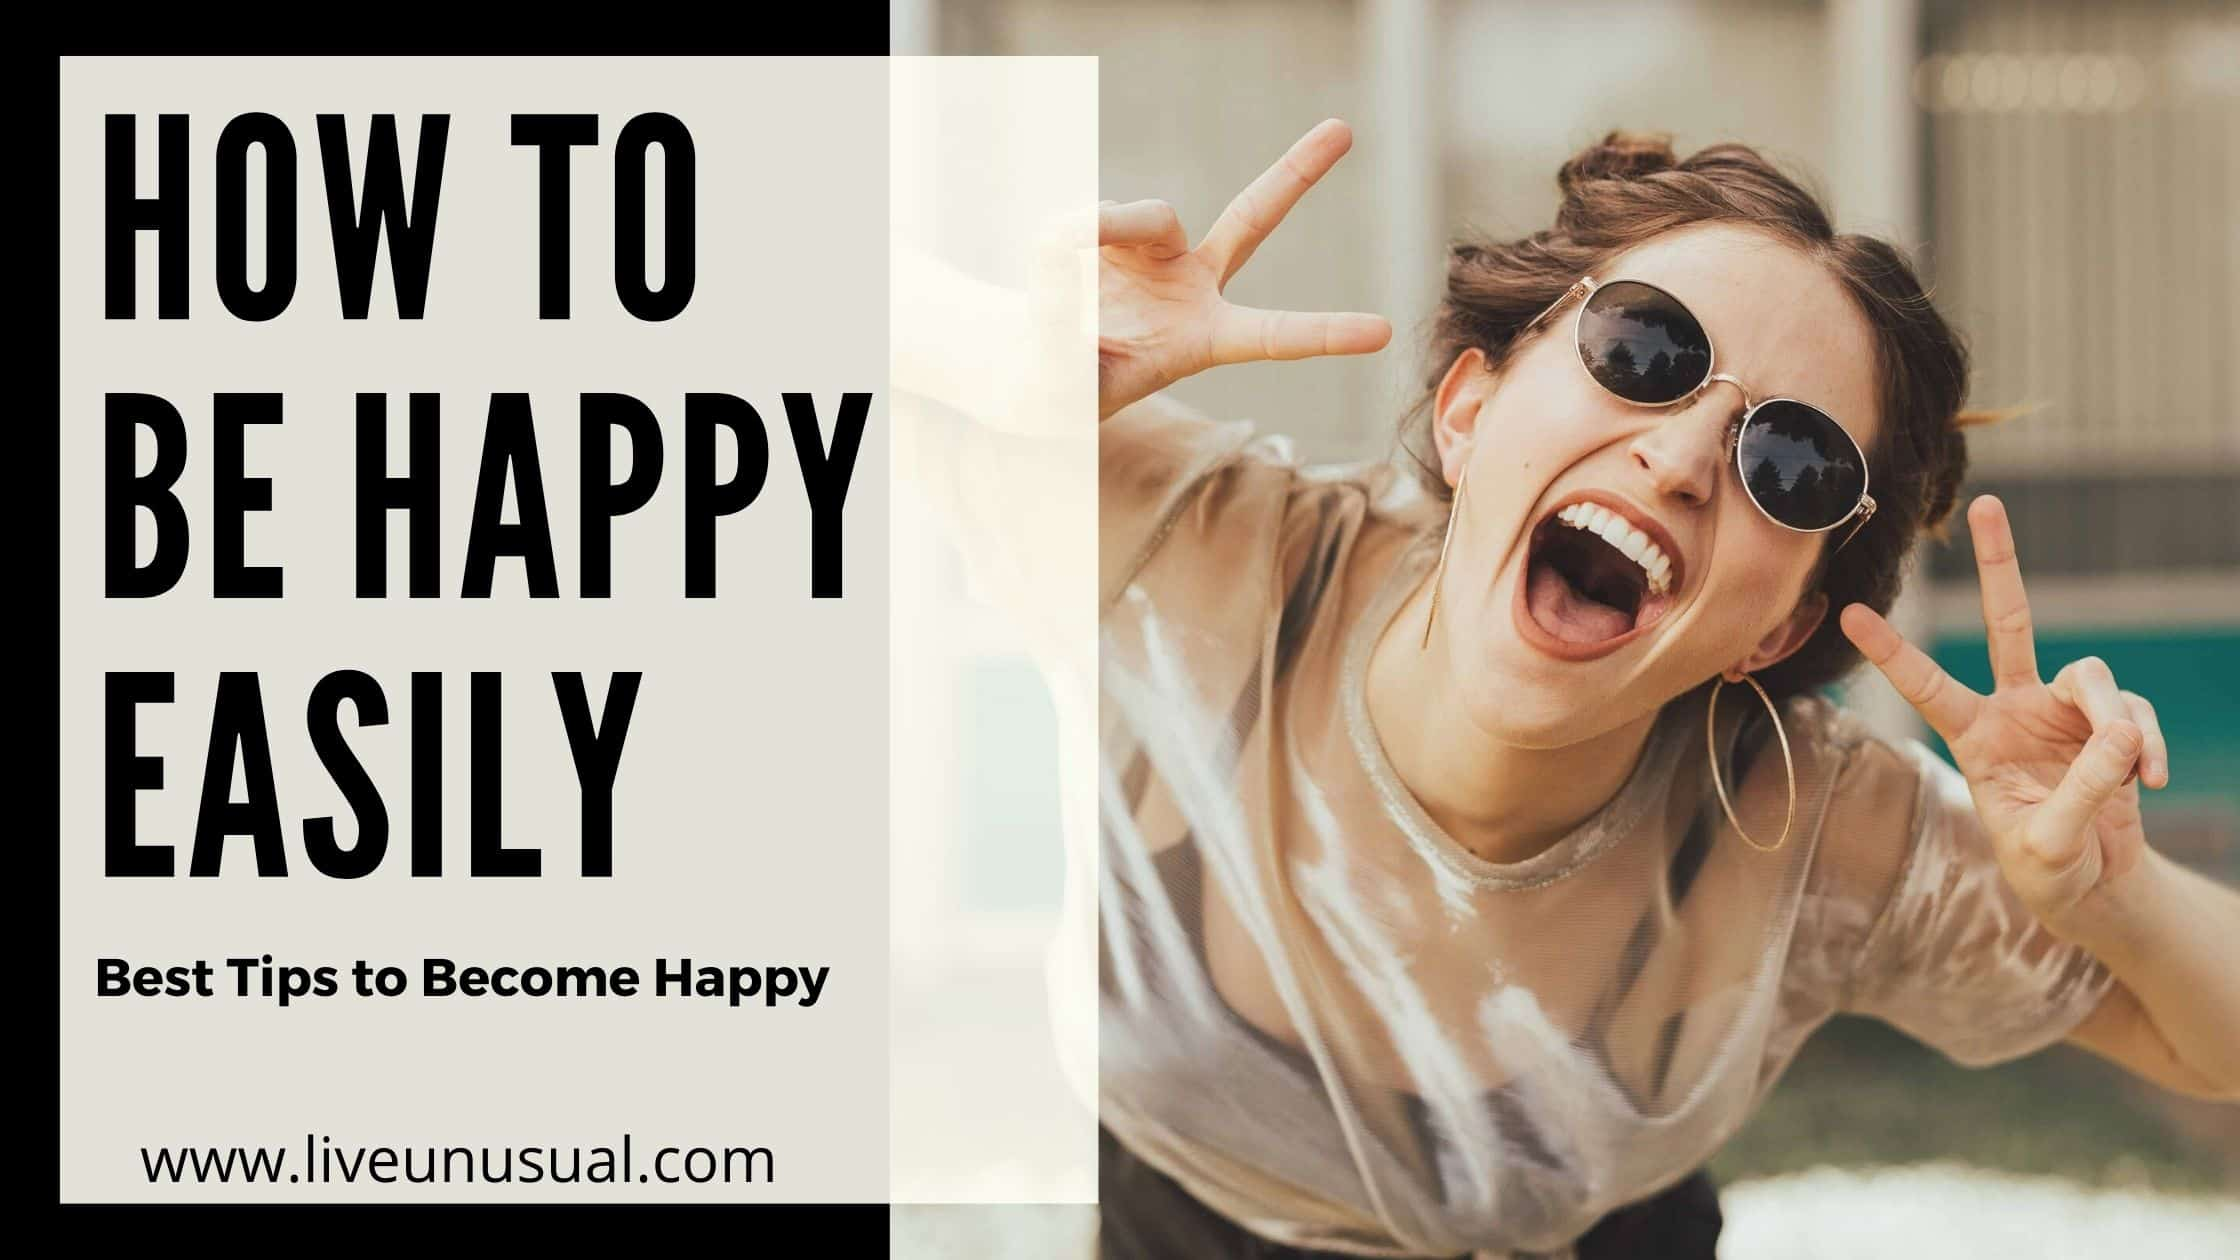 How to be happy easily